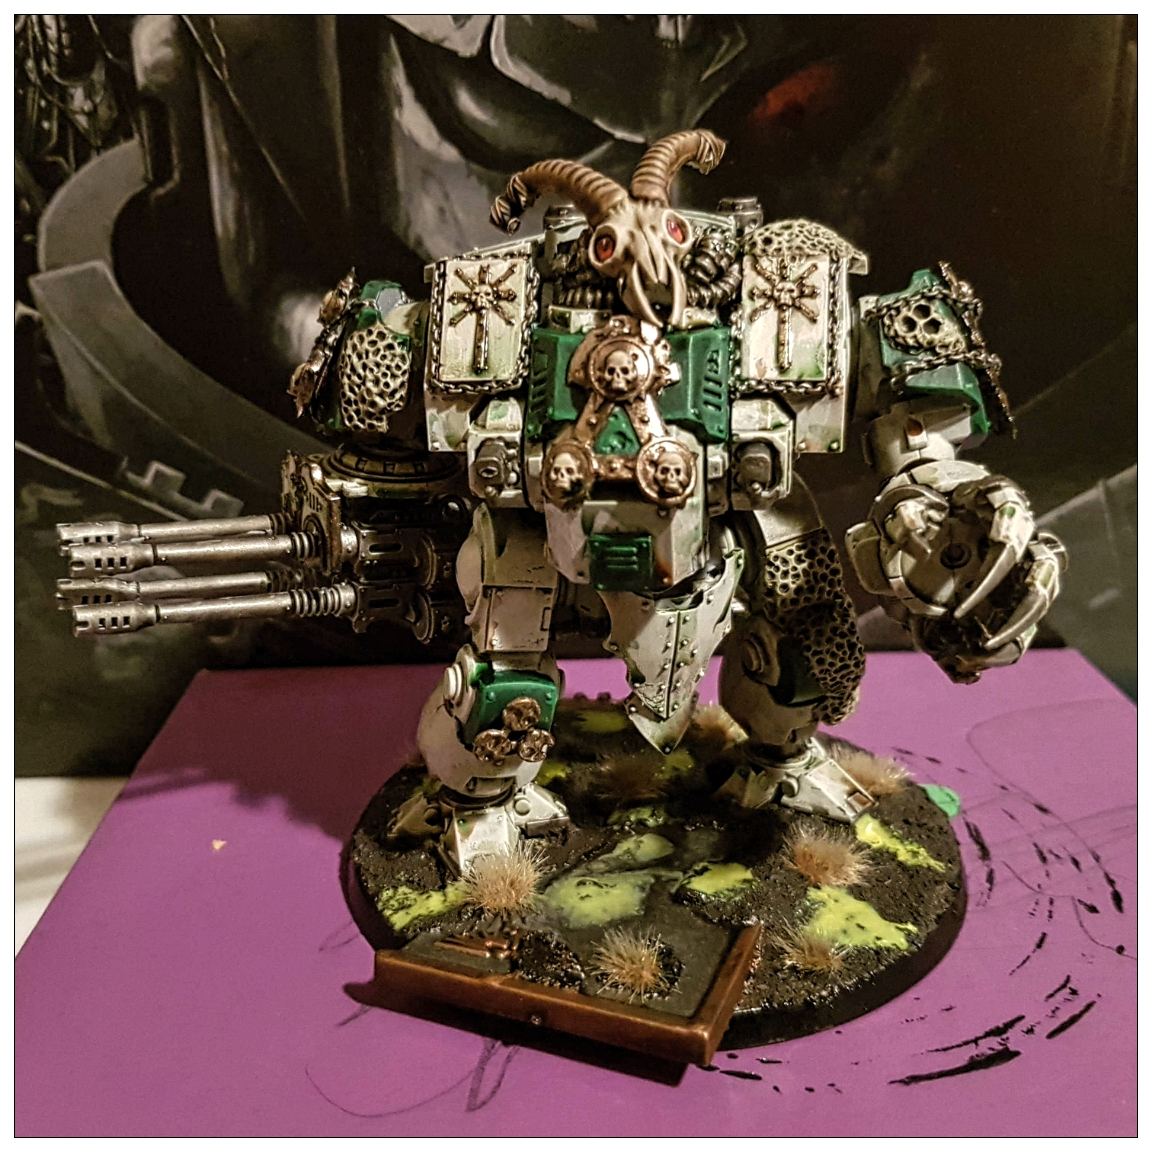 Warhammer 40k death guard Leviathan